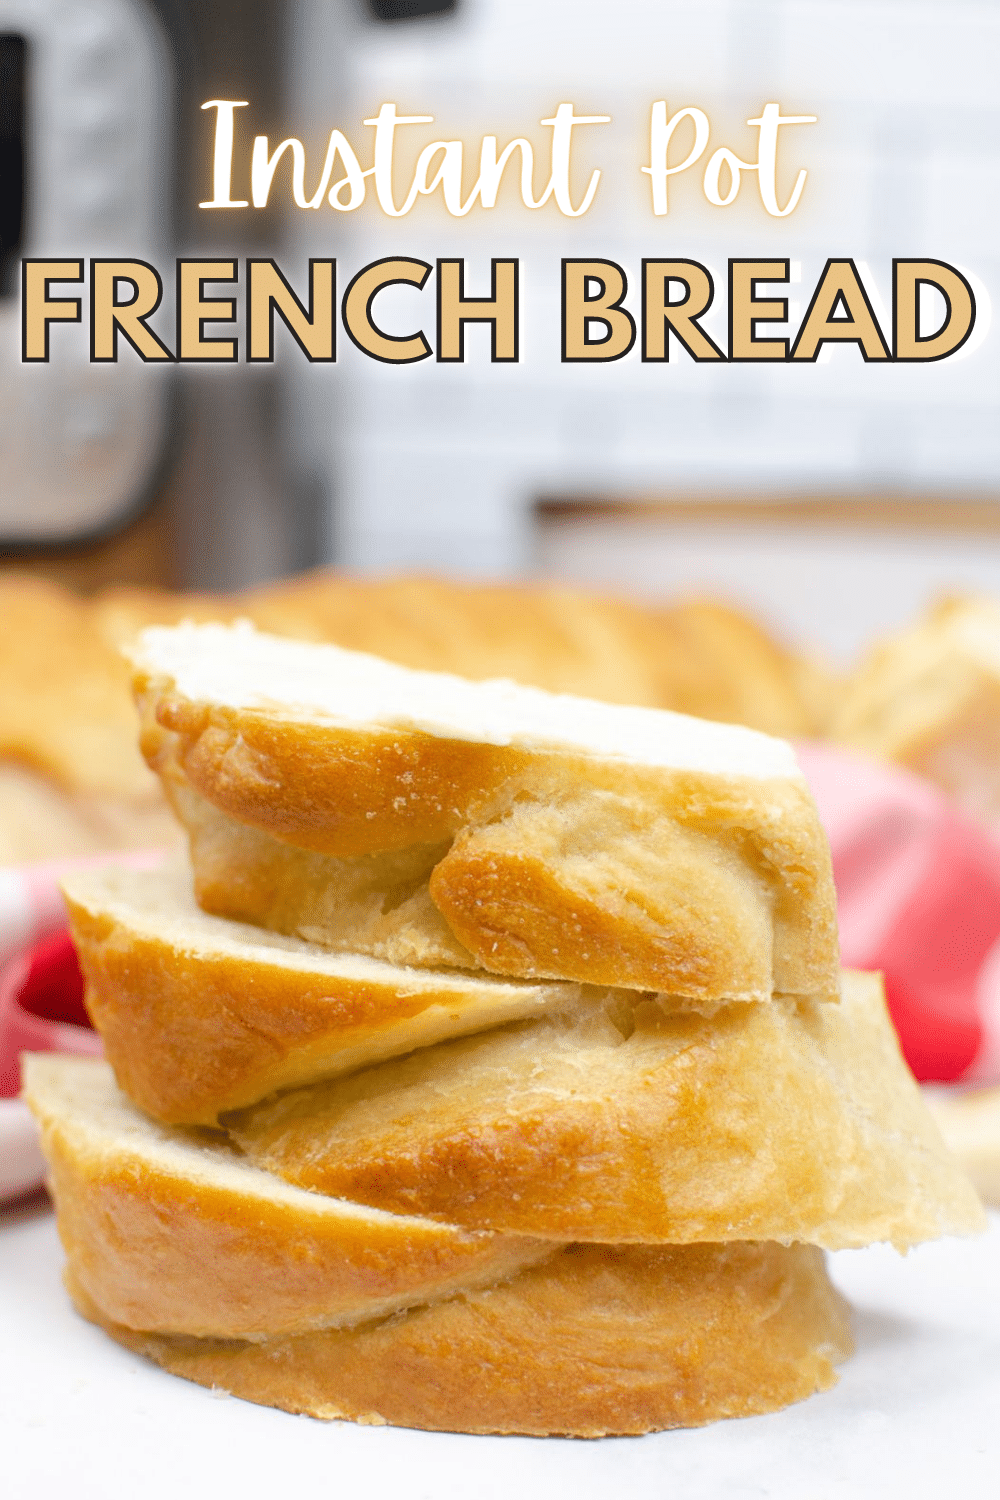 Instant Pot French Bread is crusty on the outside and soft and chewy in the center. It makes a perfect side dish for so many meals! #instantpot #pressurecooker #frenchbread #recipe via @wondermomwannab